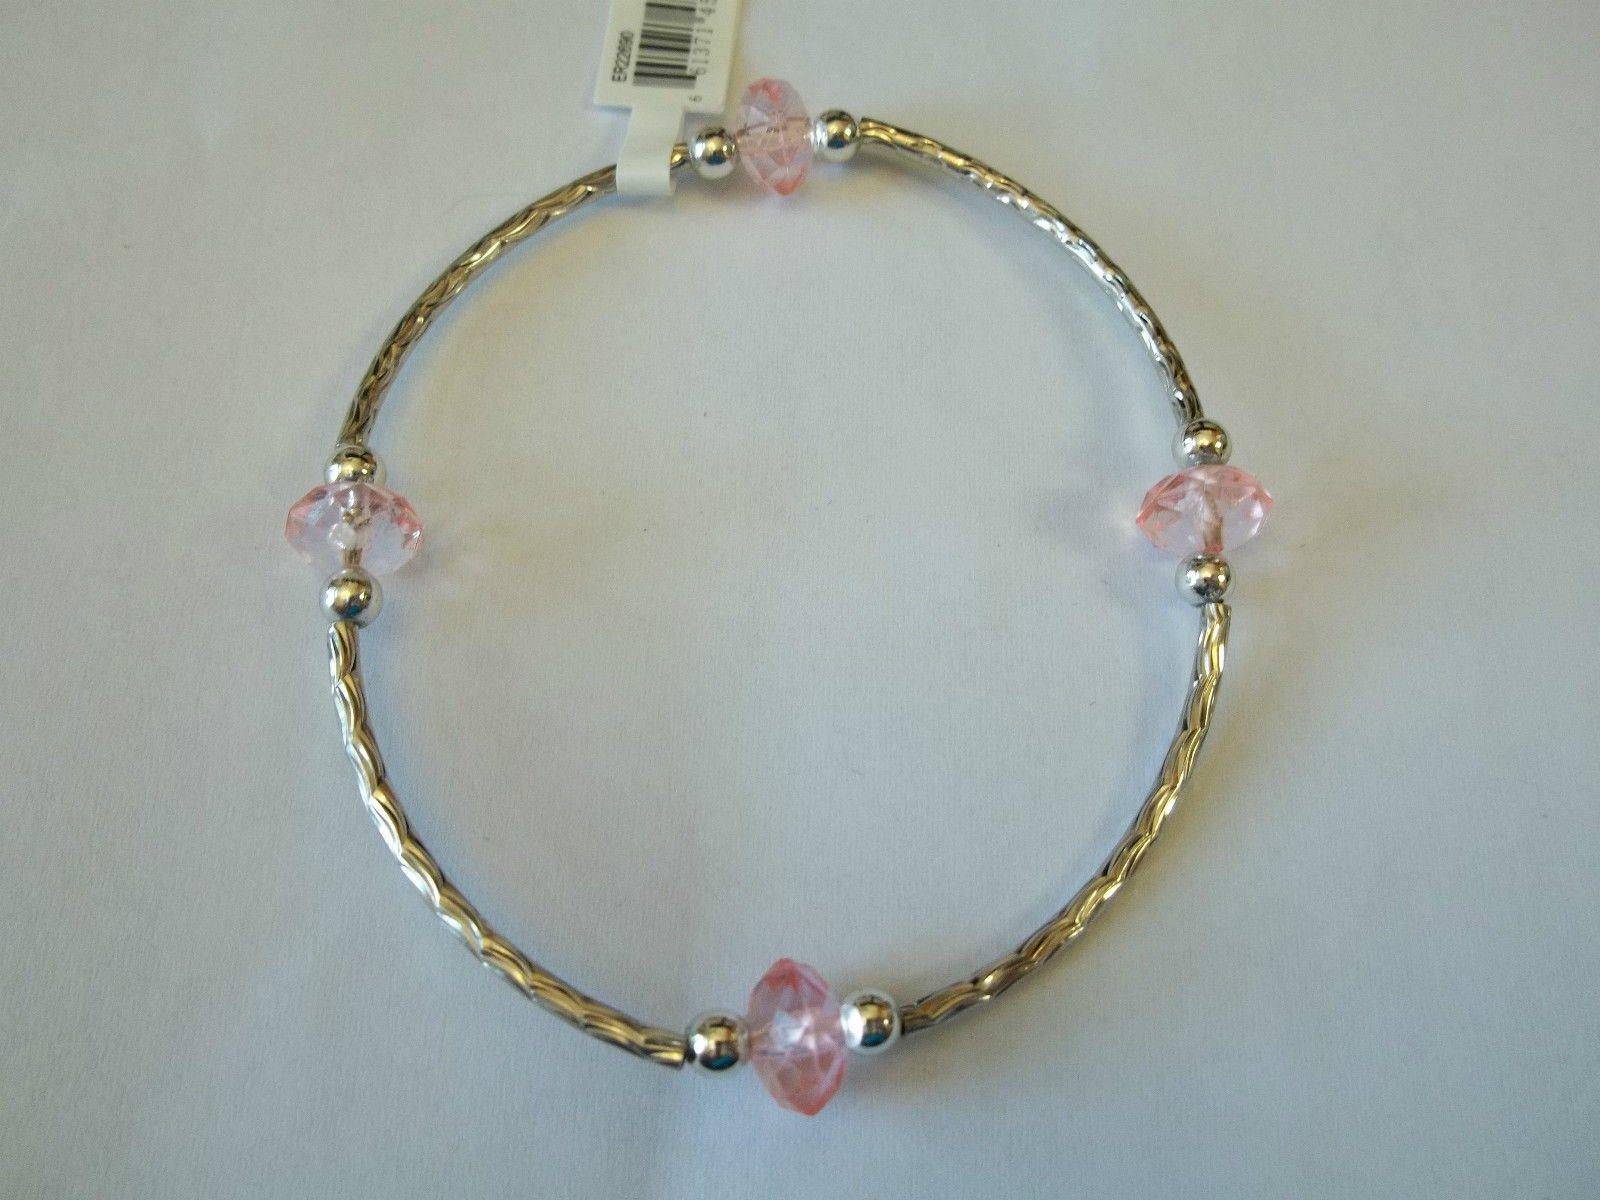 Ganz Silvertone & Pink Beaded Stretch Bracelet ER22690 New W Tags